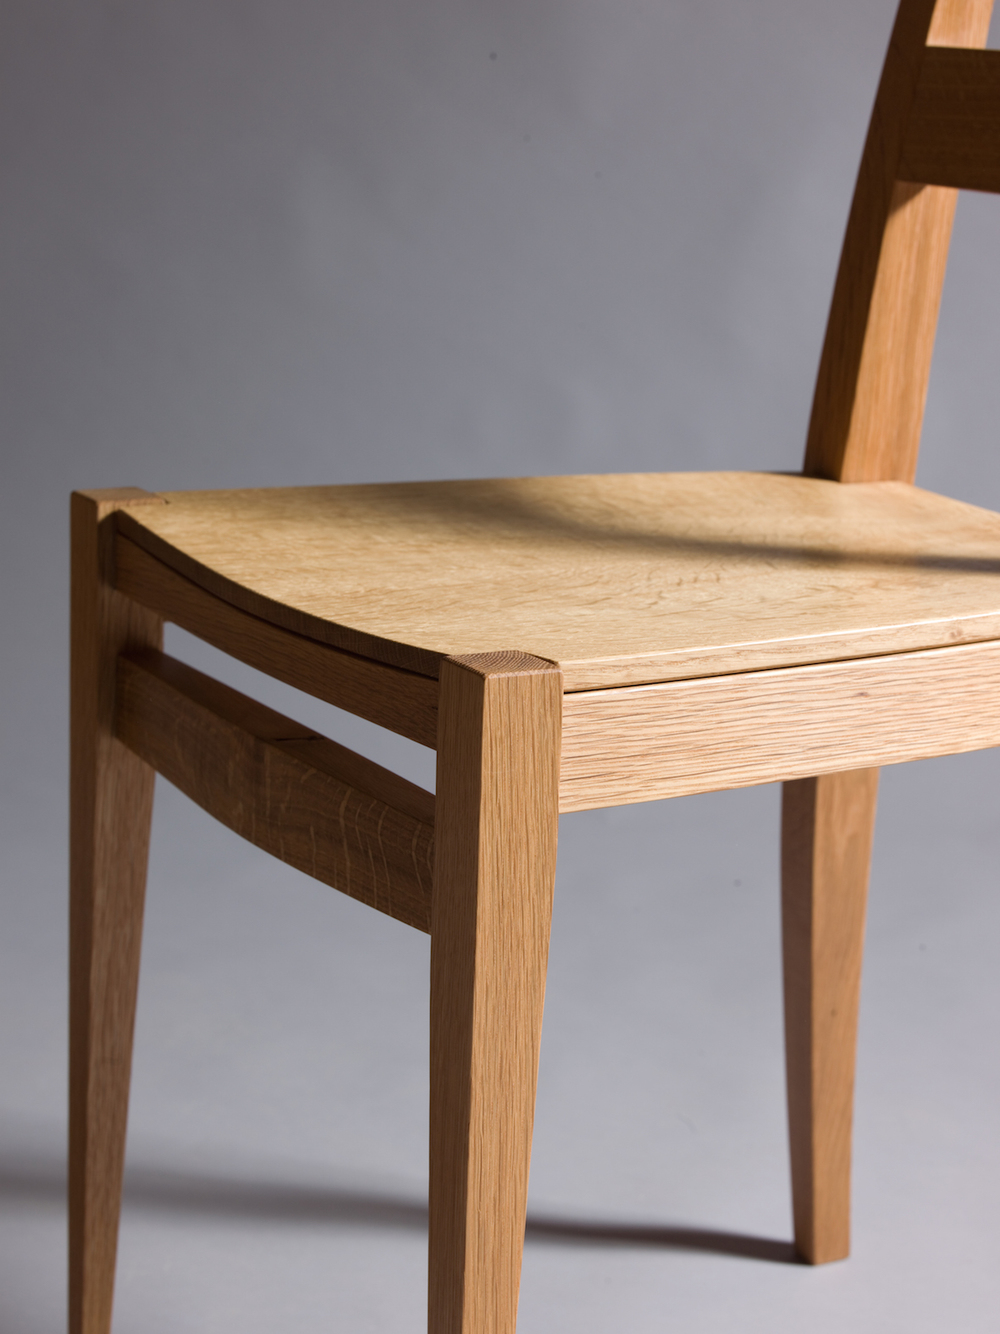 Oak Chair6.jpg